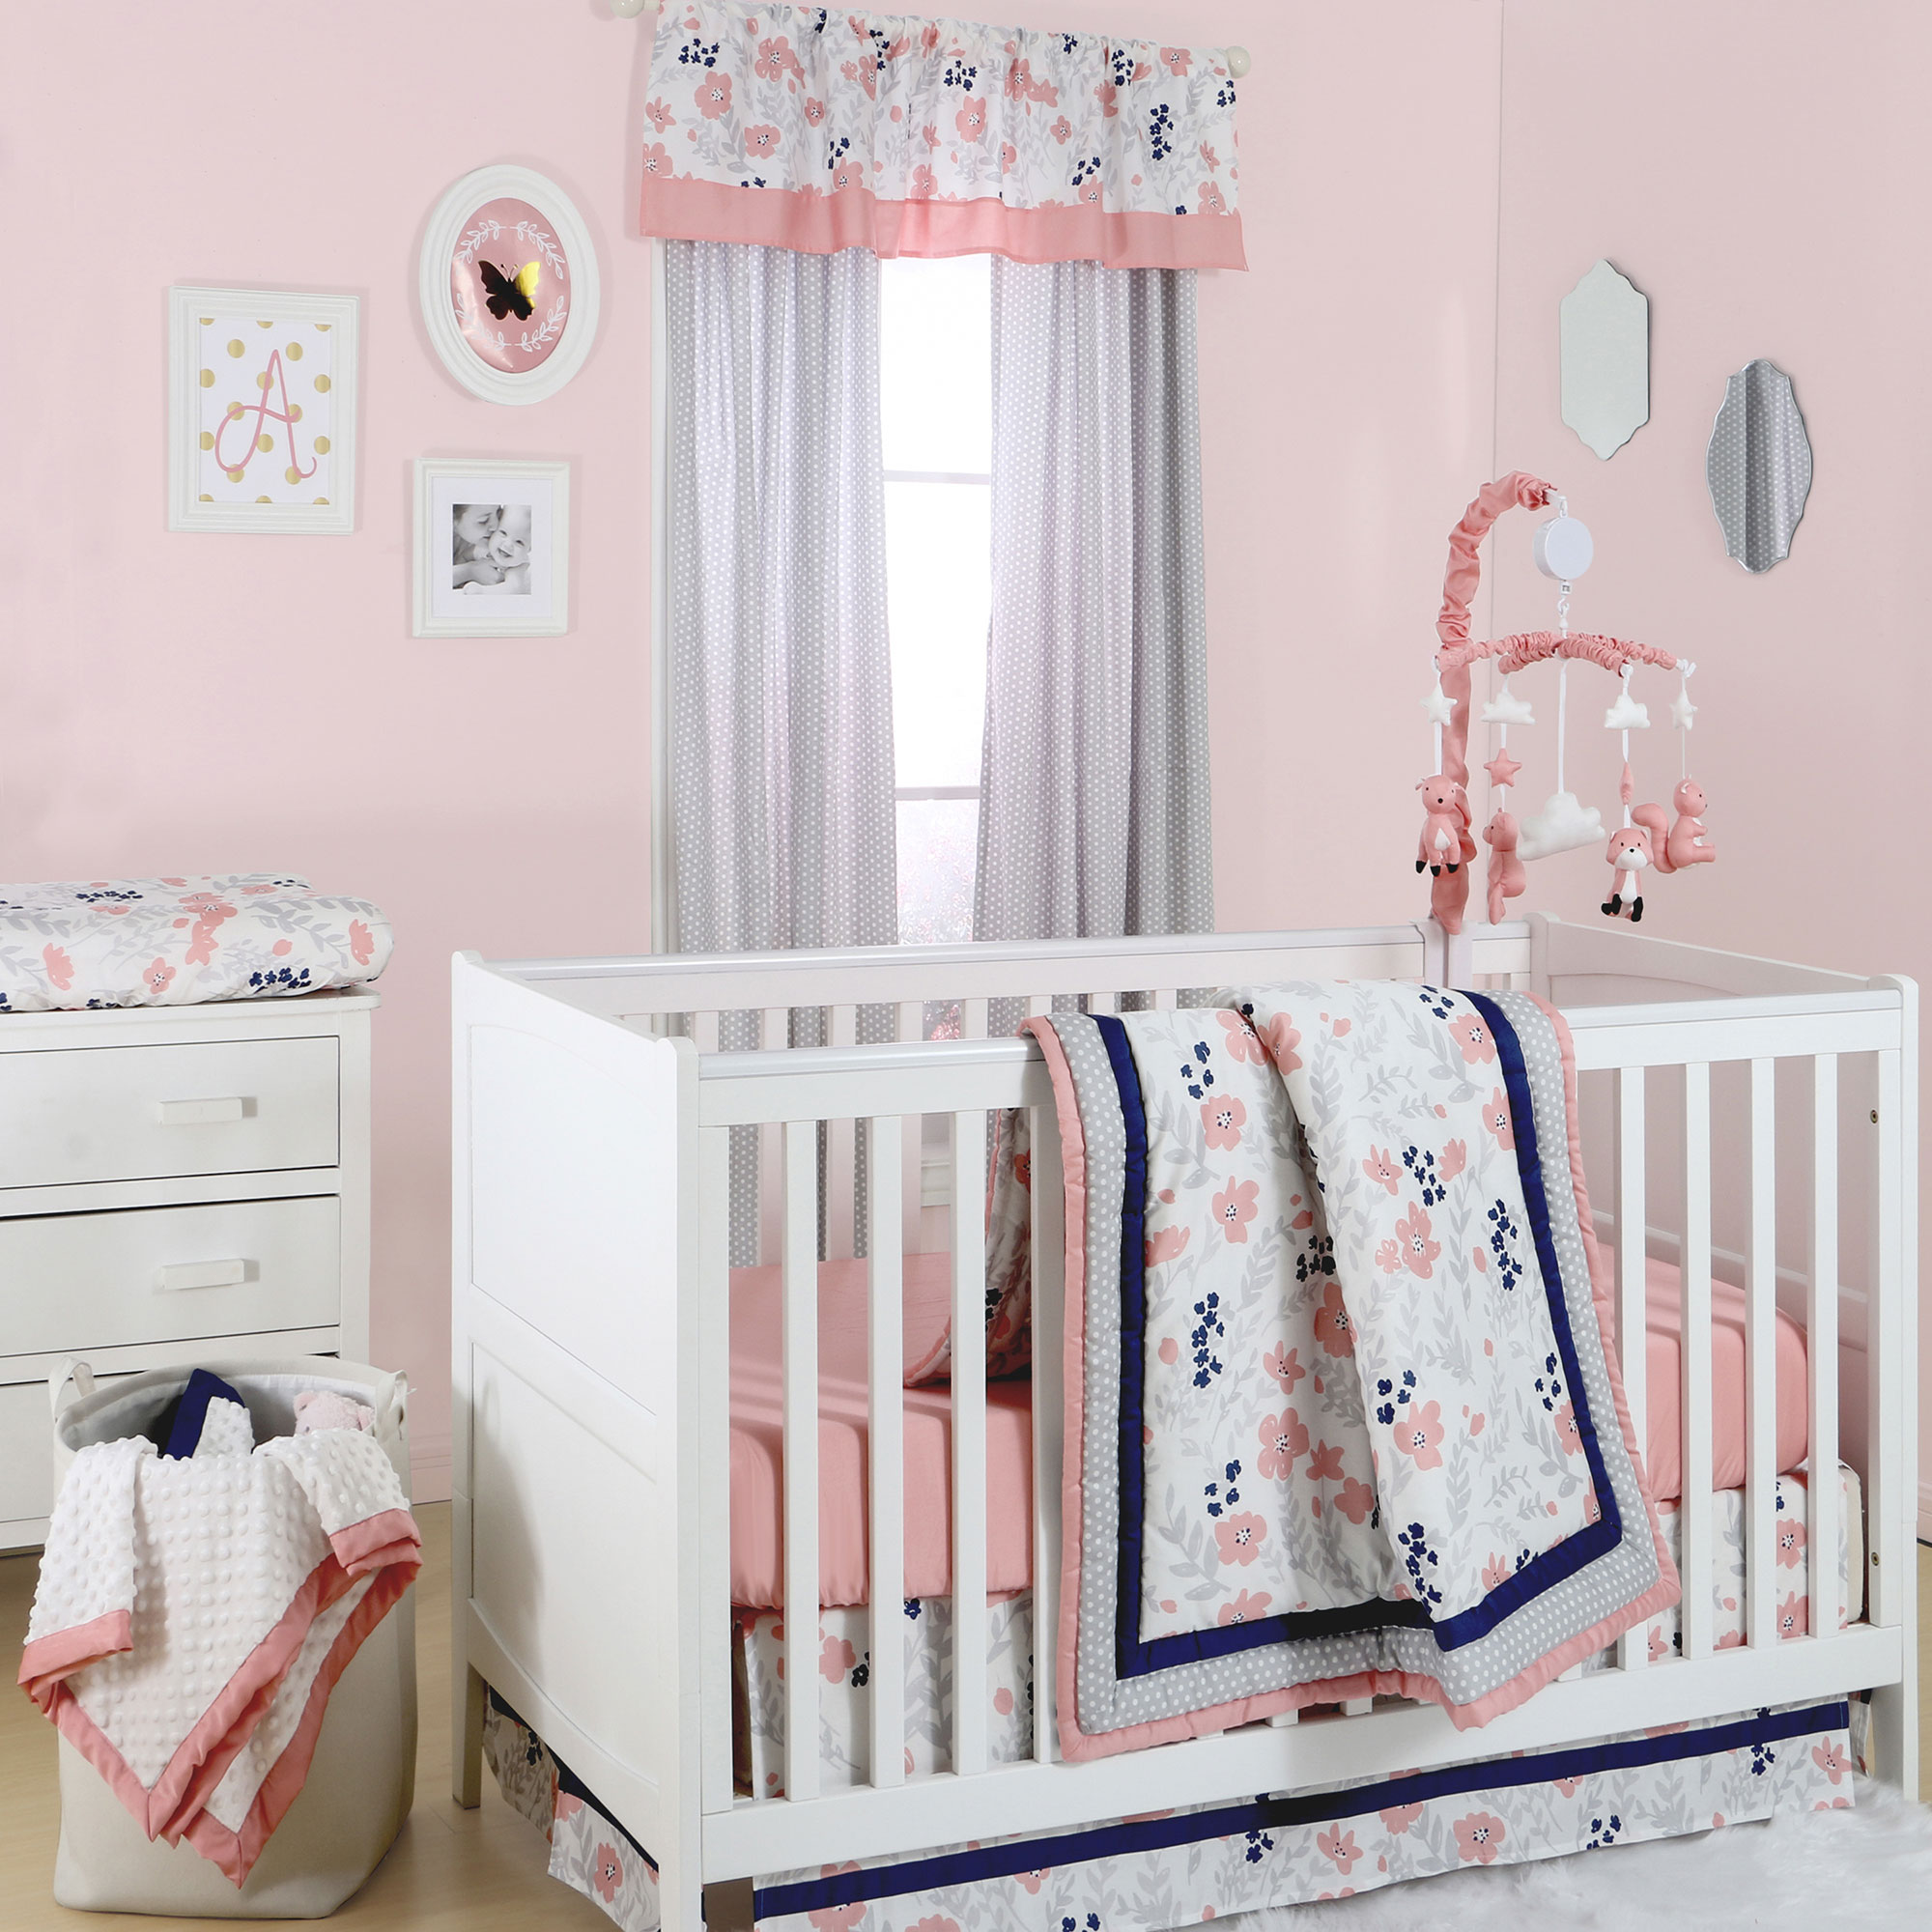 The Peanut Shell 4 Piece Baby Girl Crib Bedding Set - Coral,Navy Blue, and Grey Floral with Polka Dot Trim - 100% Cotton Quilt, Dust Ruffle, Fitted Sheet, and Mobile